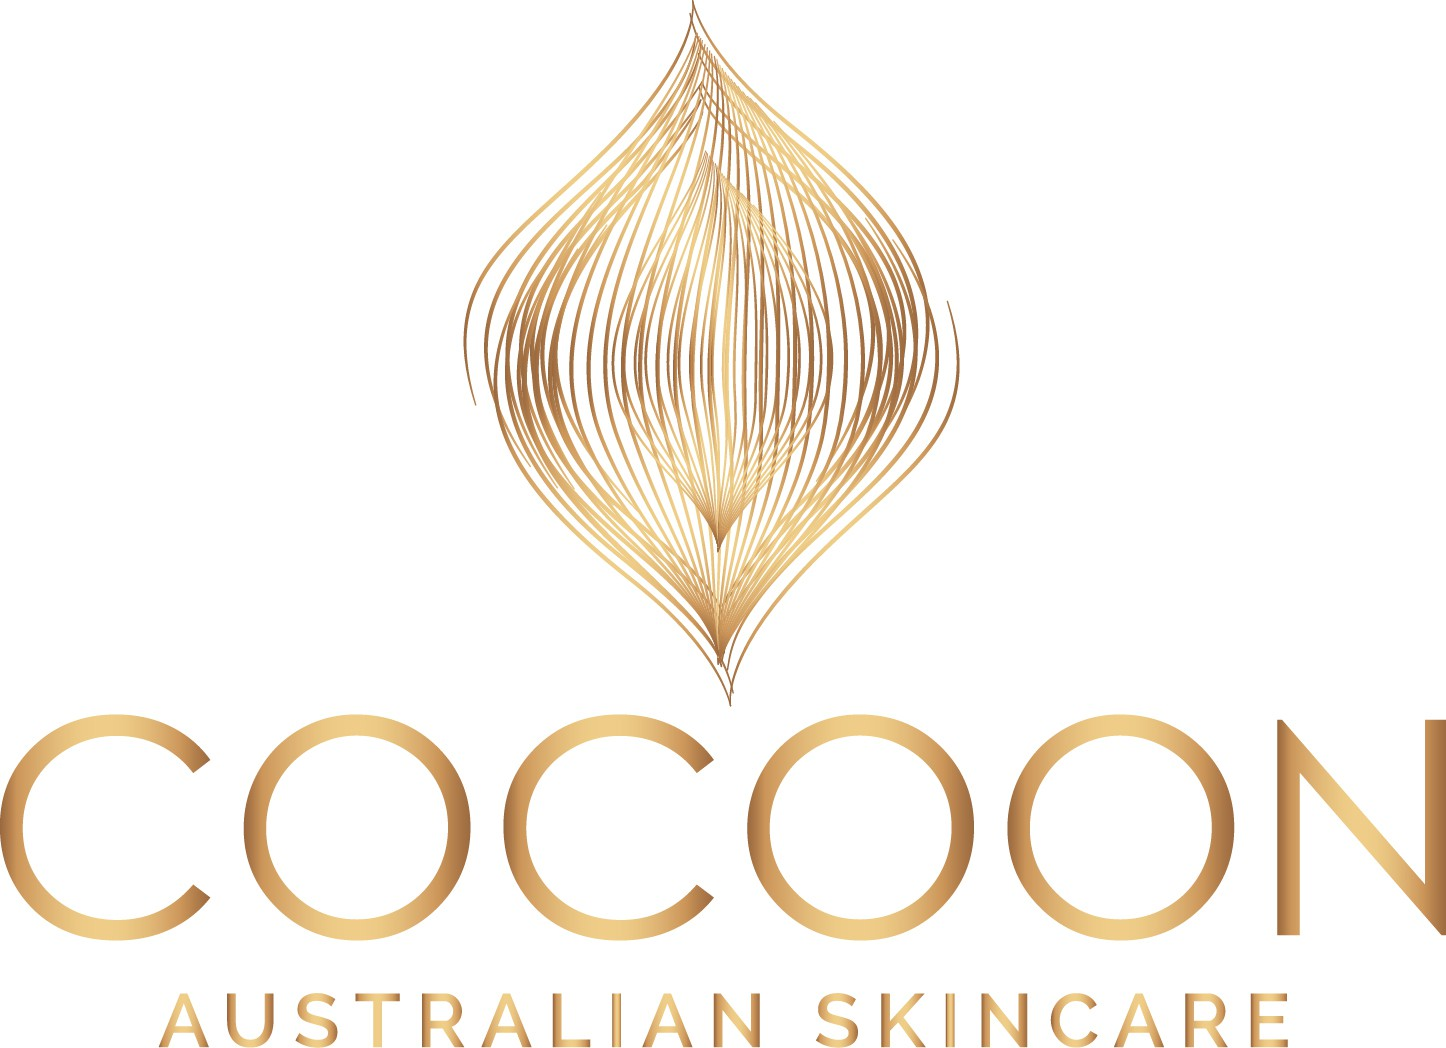 New Luxury Australian Skincare Brand - Launches Spa-at-Home kits - We need a logo